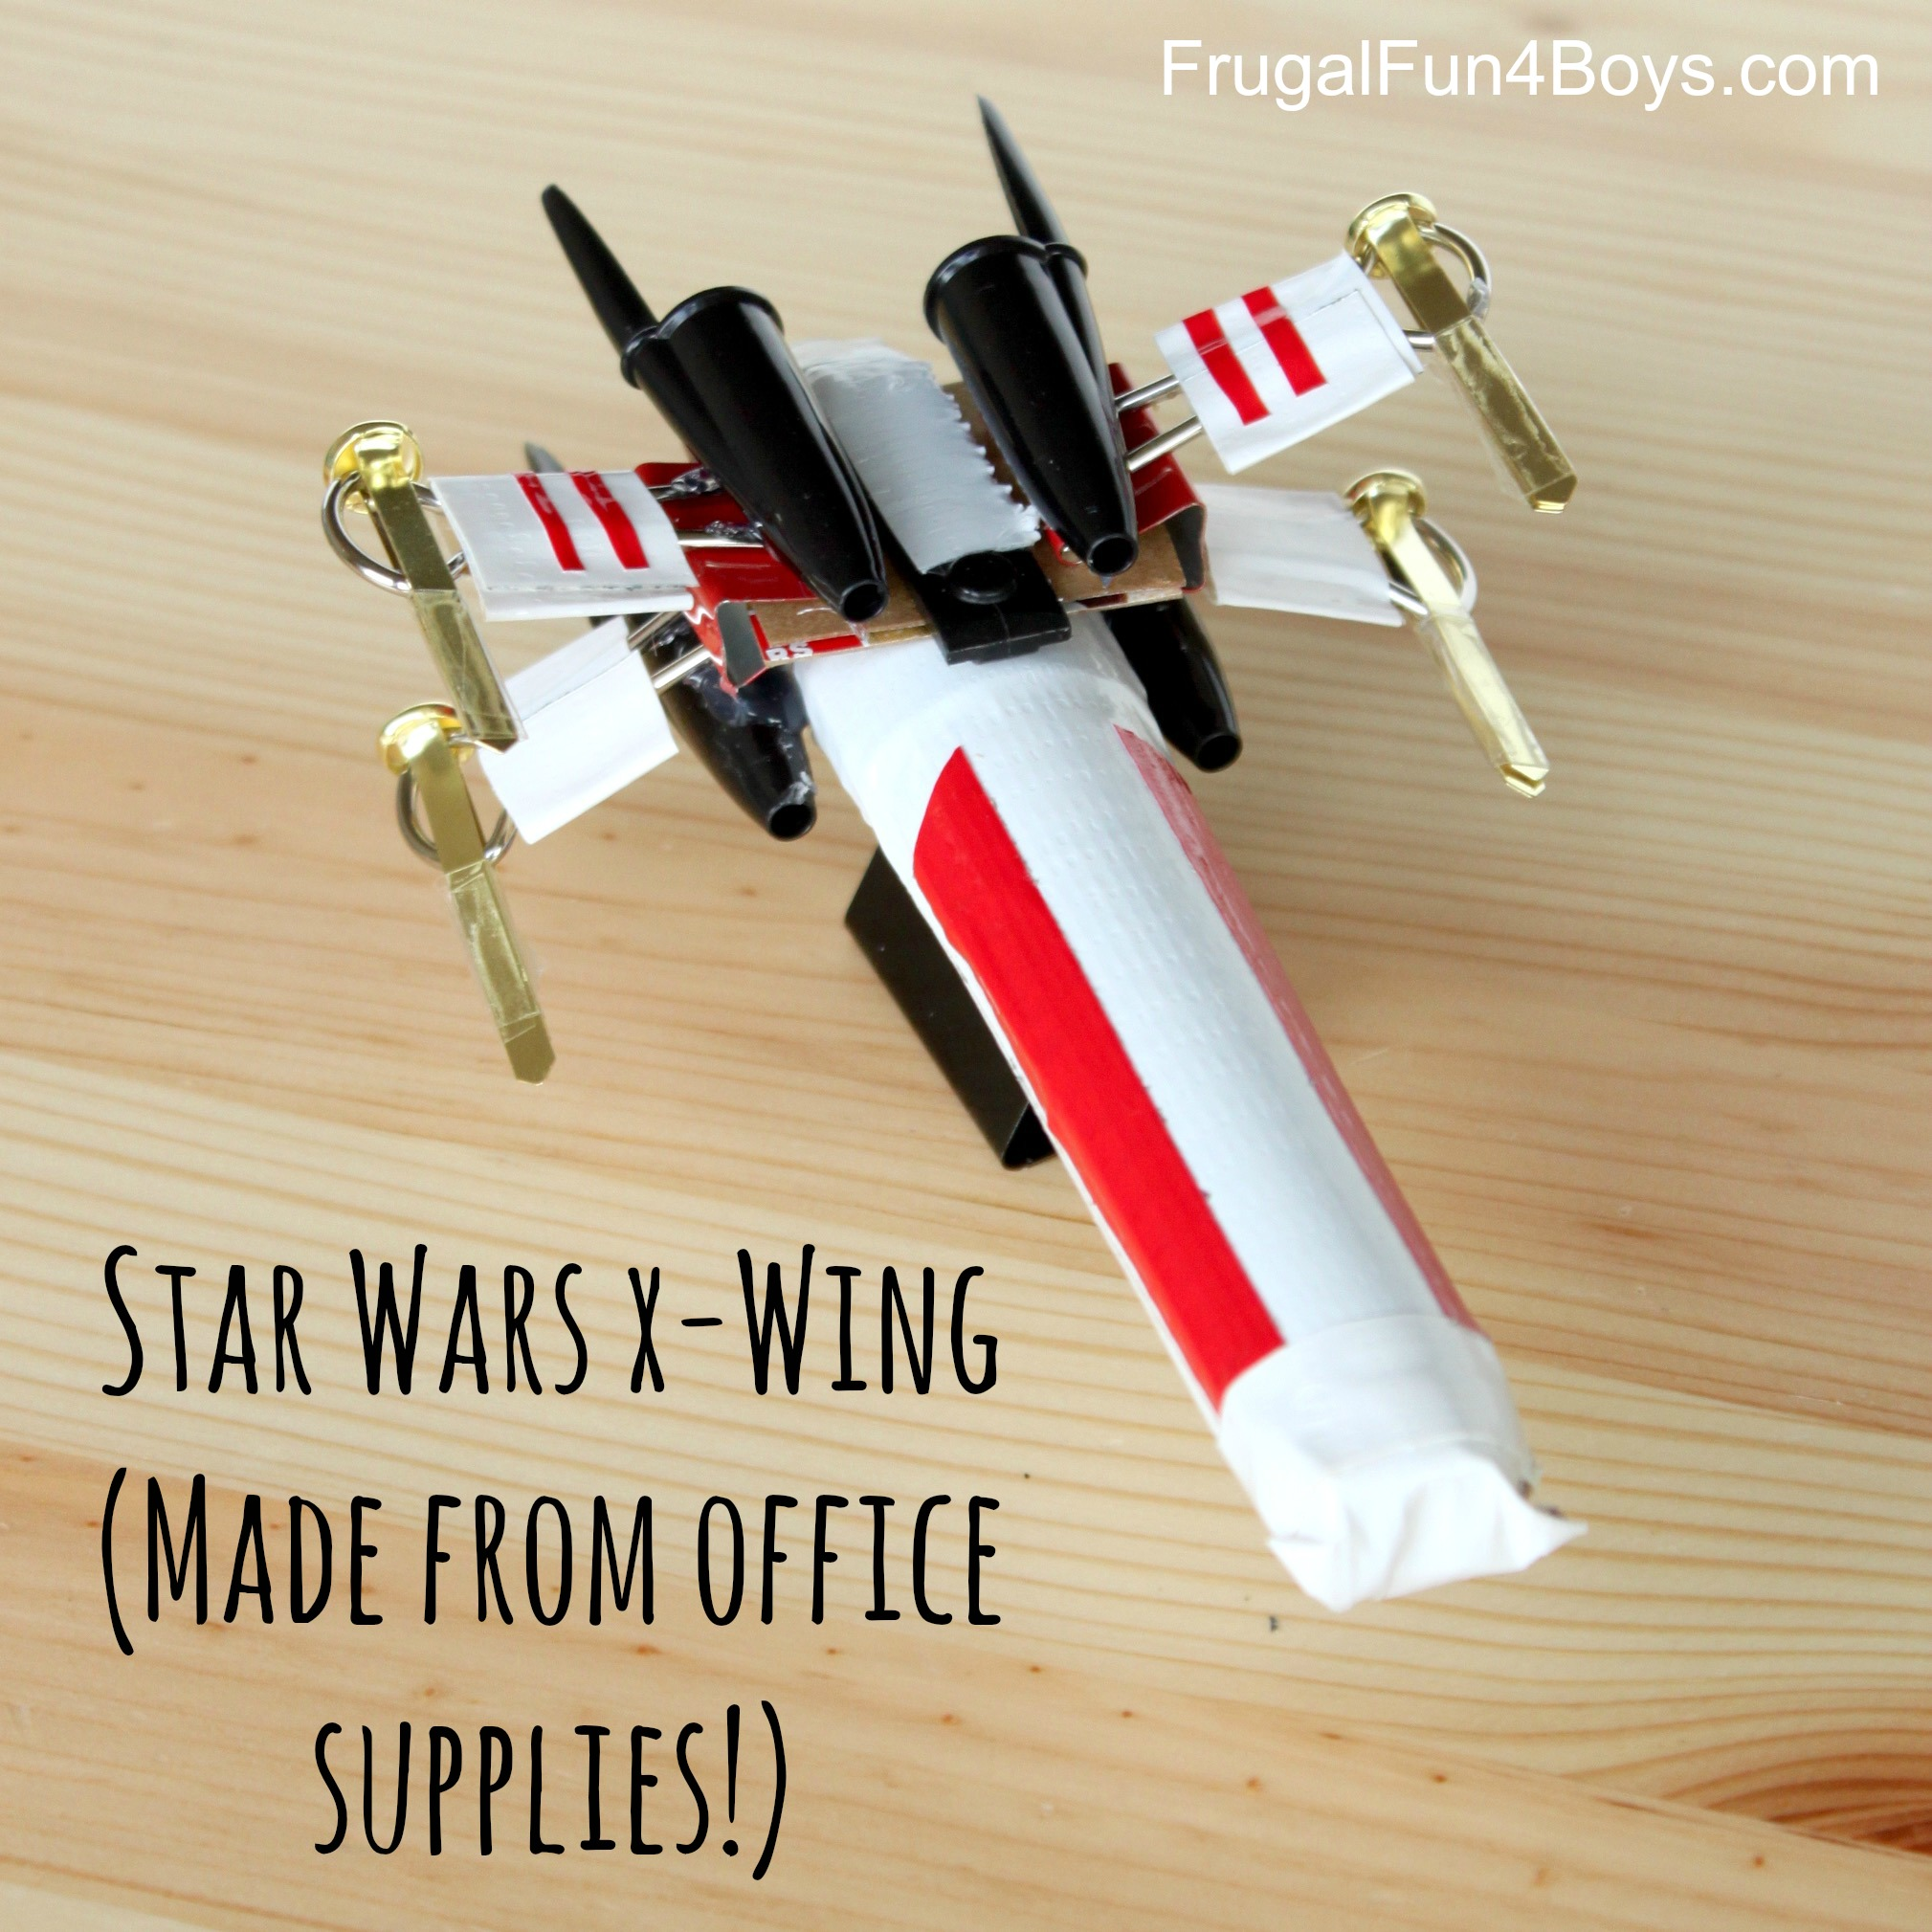 Star Wars X-Wing (Made out of office supplies!)